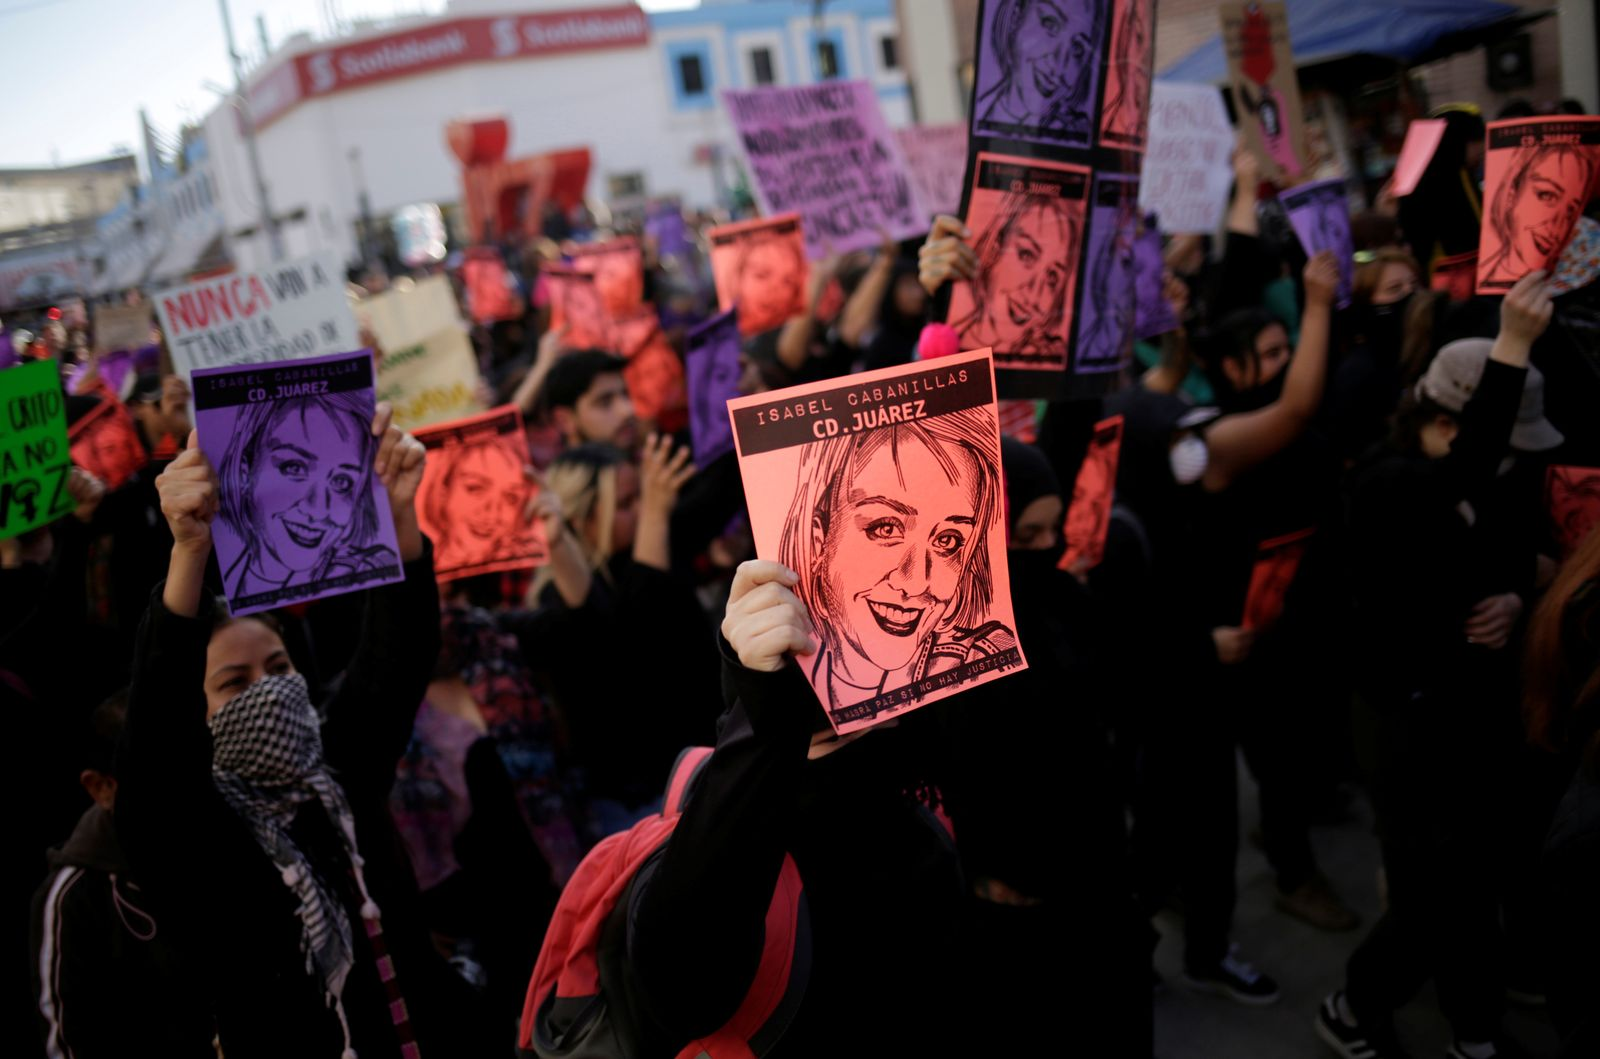 Demonstrators take part in a protest in Ciudad Juarez to demand justice for the murder of Isabel Cabanillas